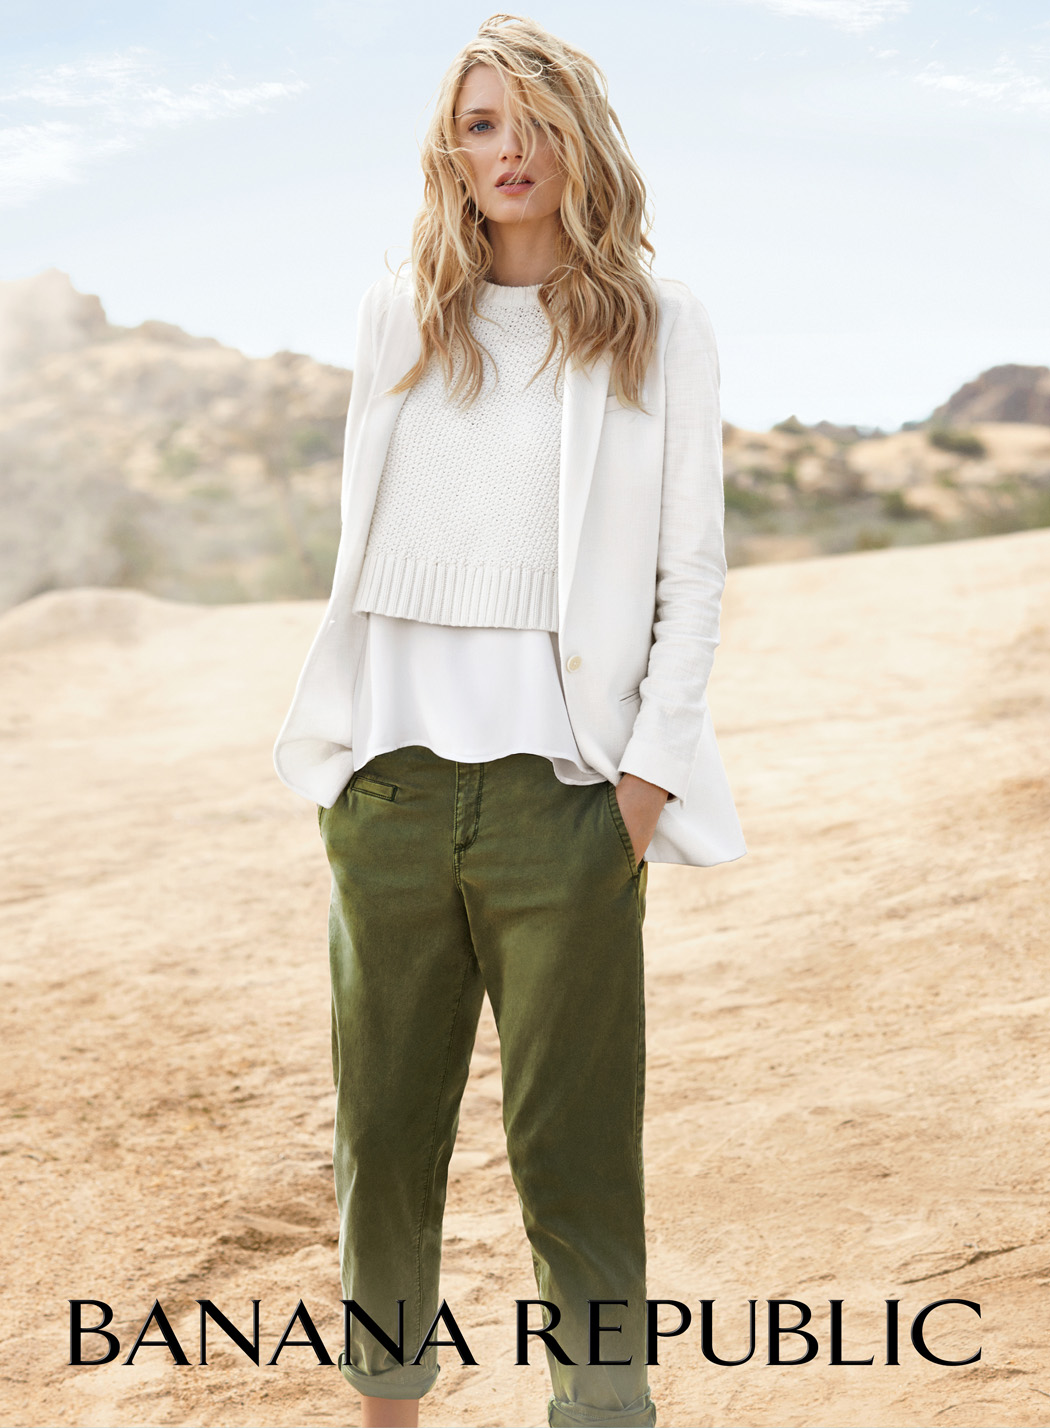 banana-republic-spring-2015-ad-campaign-the-impression-08